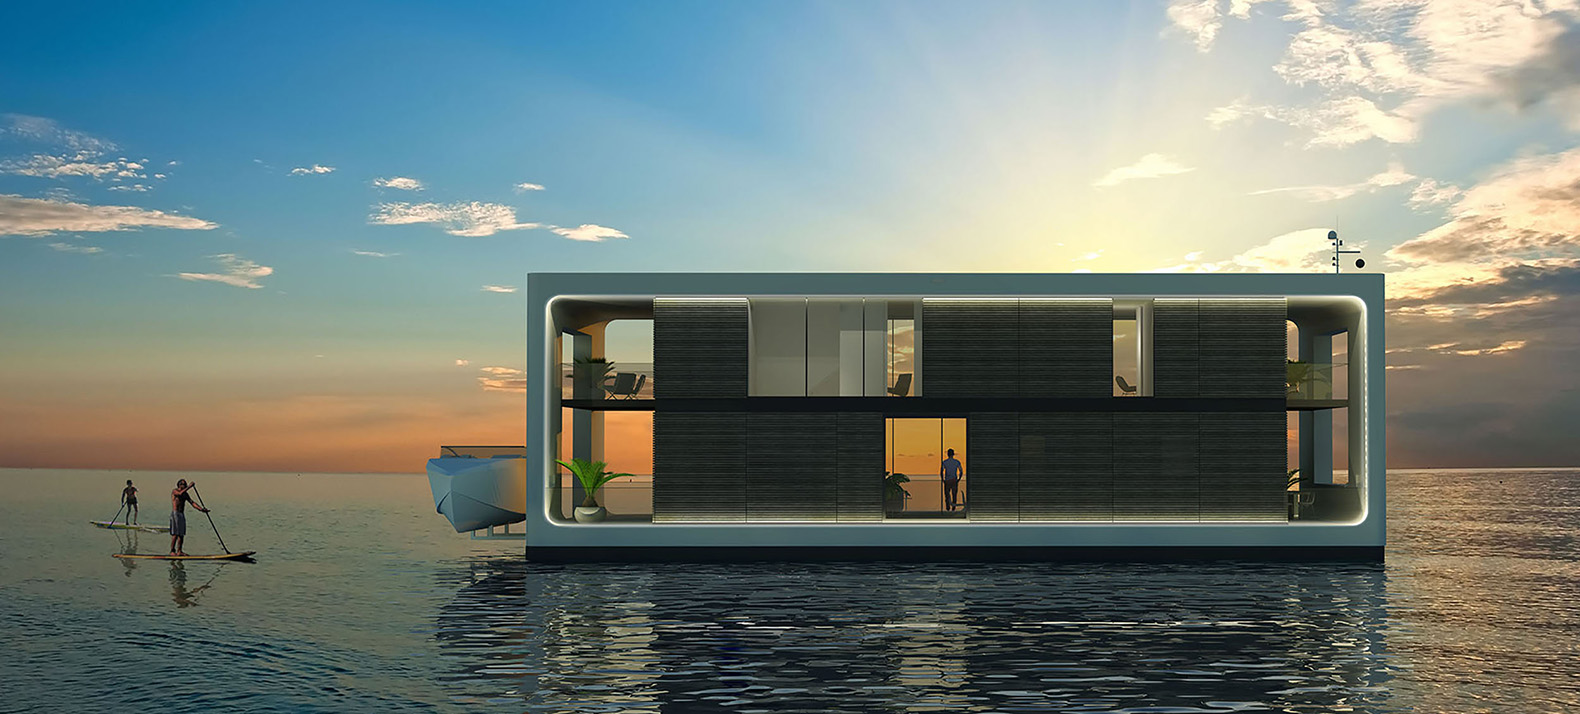 These Hurricane Proof Floating Homes Are Packed With Green